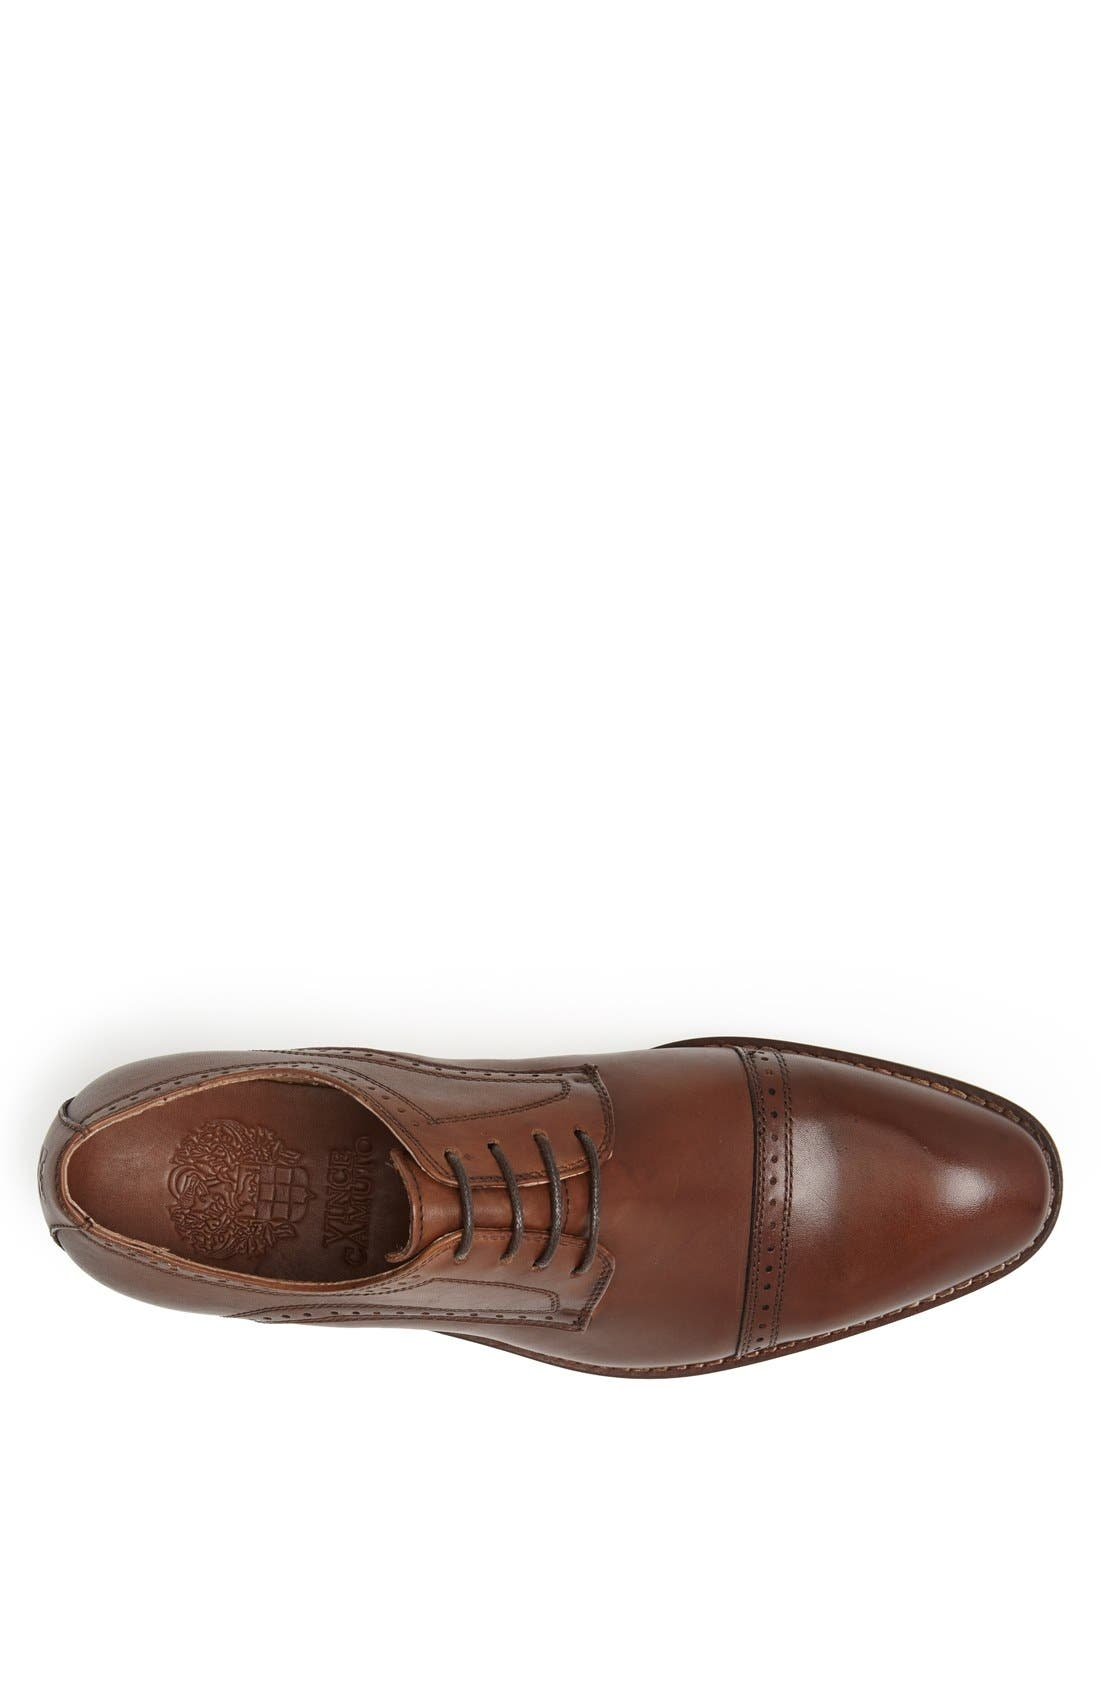 Alternate Image 3  - Vince Camuto 'Rao' Cap Toe Derby (Men)